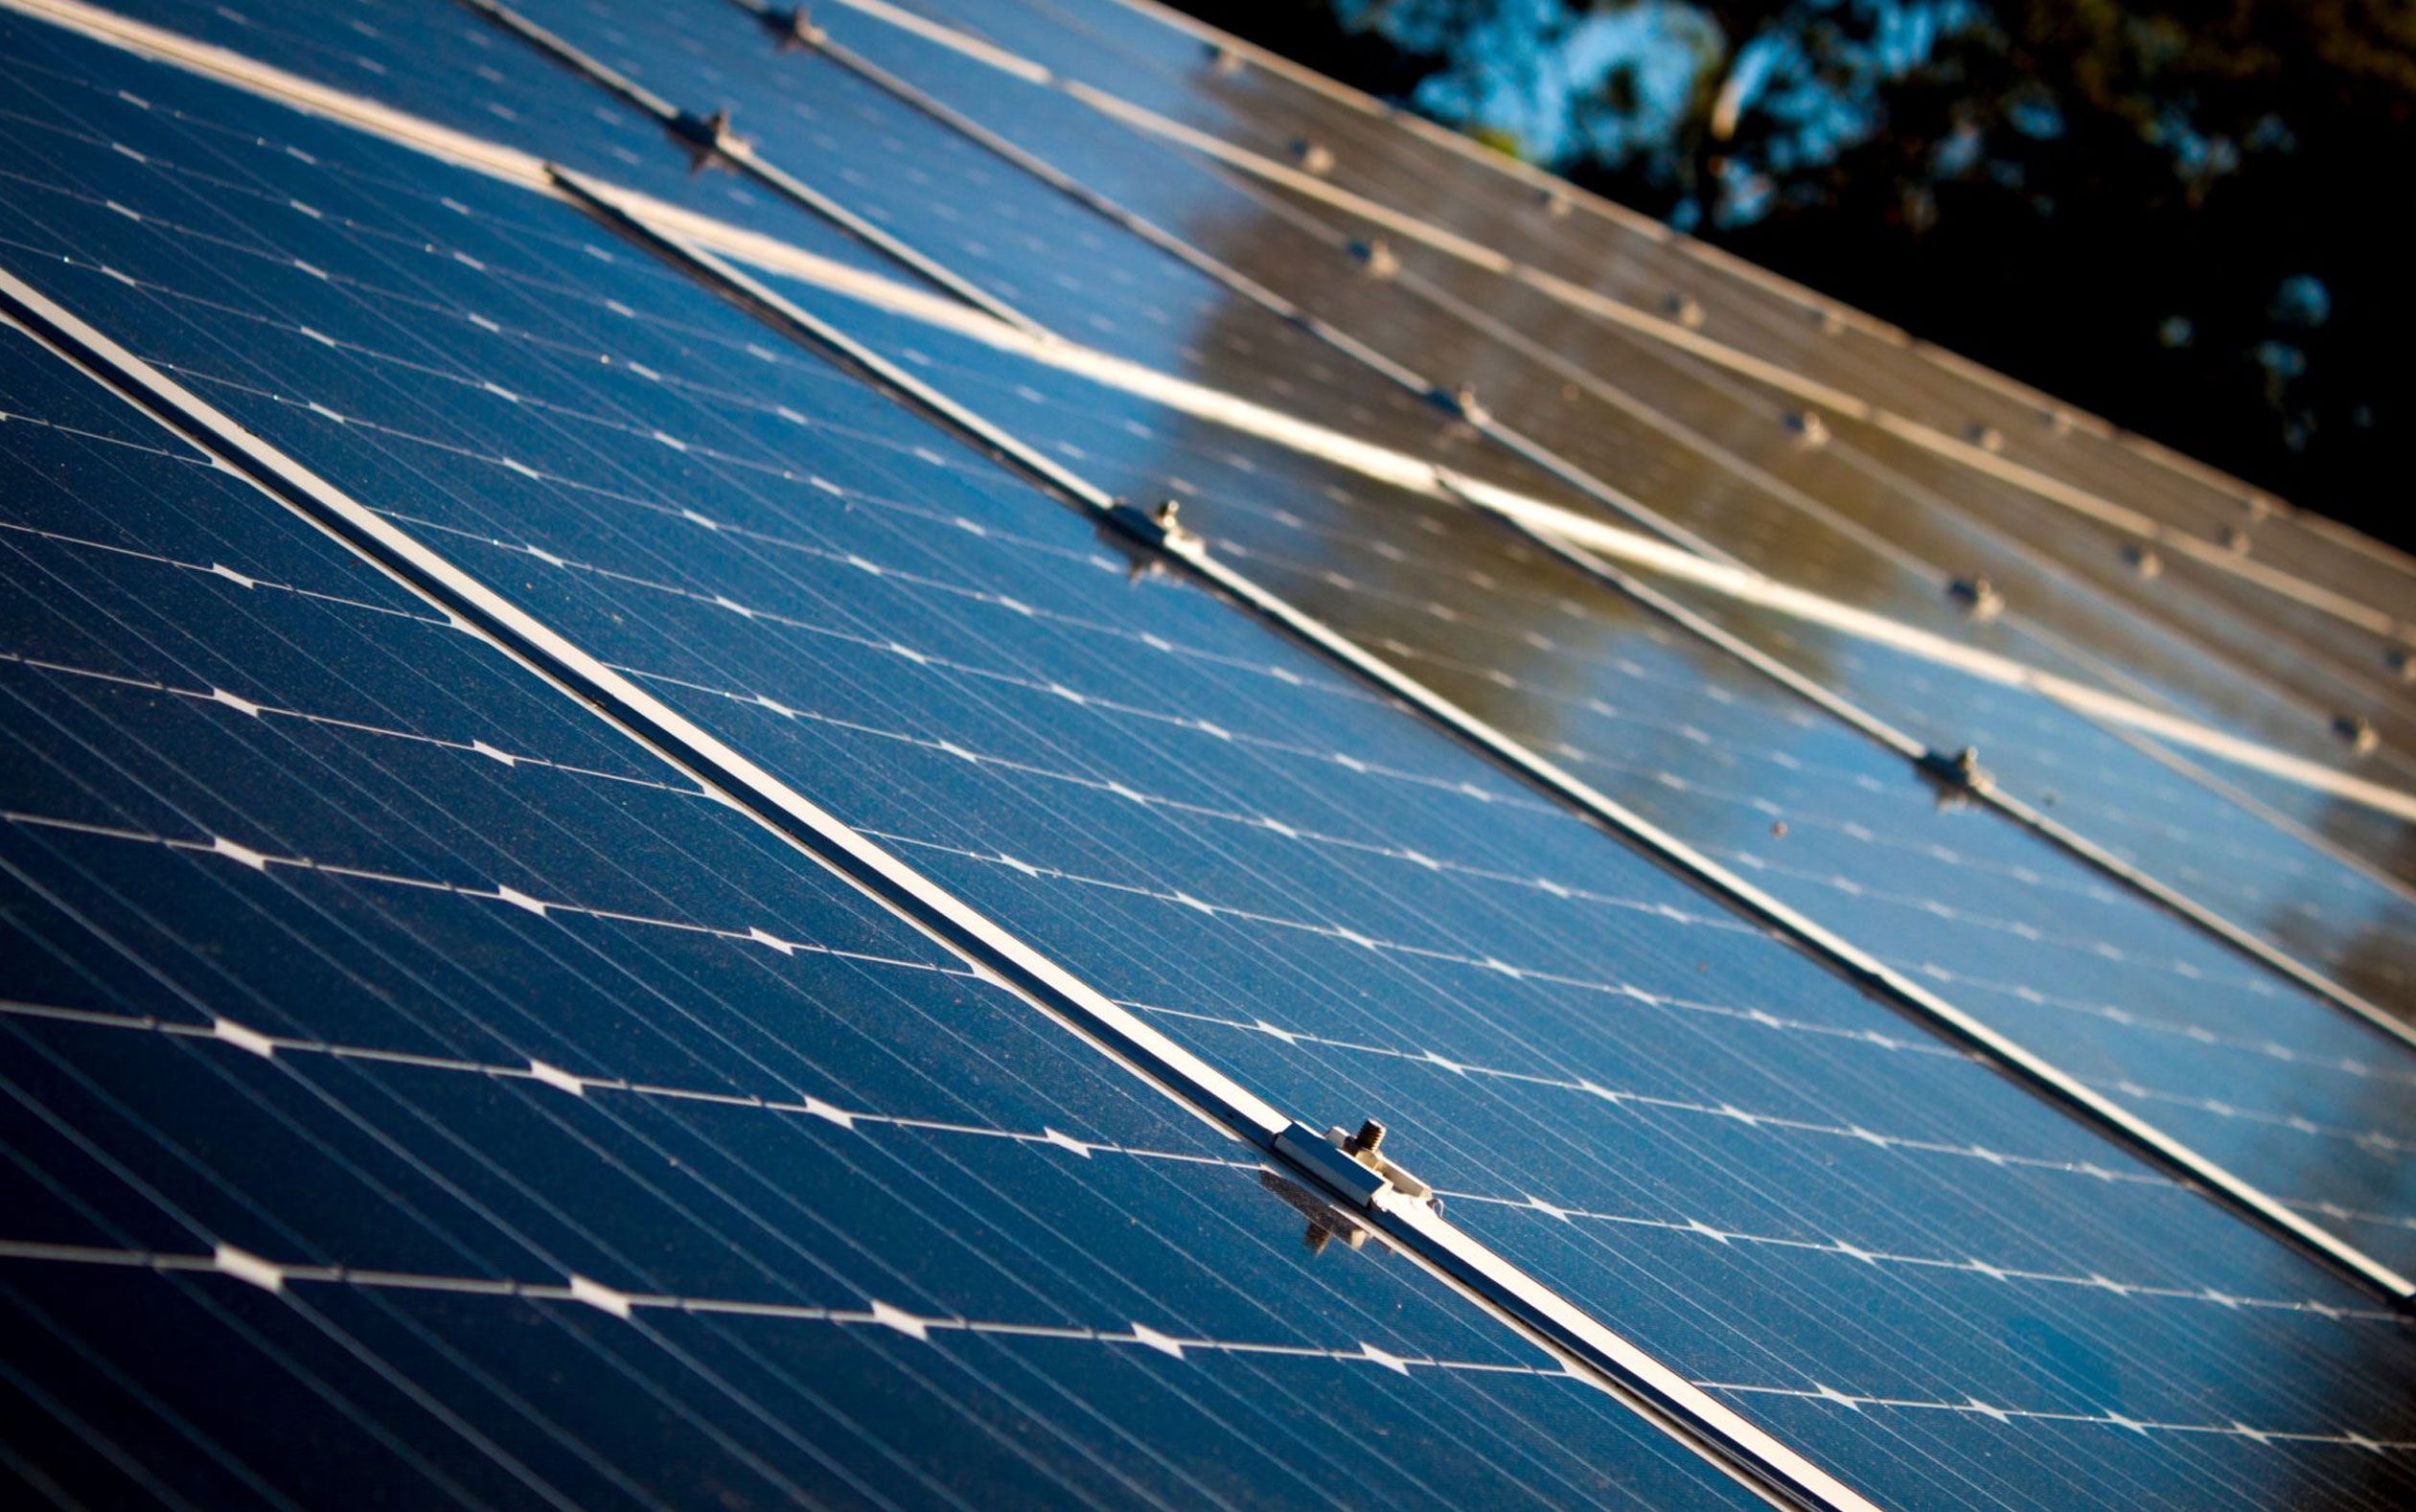 How to Ensure Solar Makes Sense for Your Home